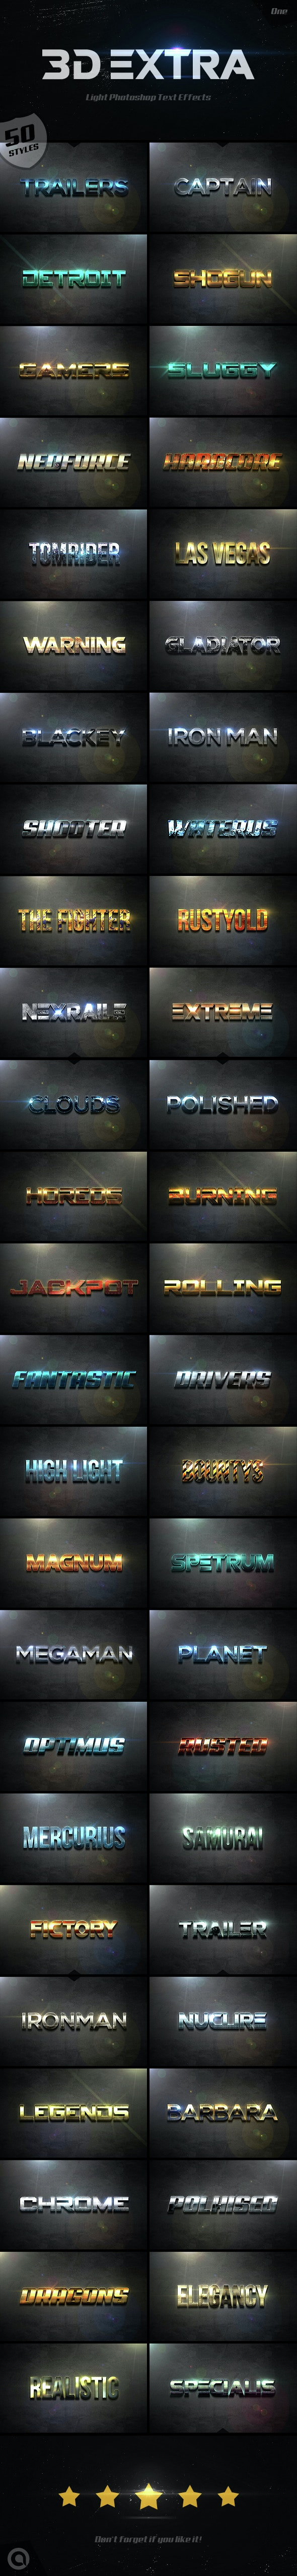 3D Extra Light Text Effects Bundle One - Styles Photoshop